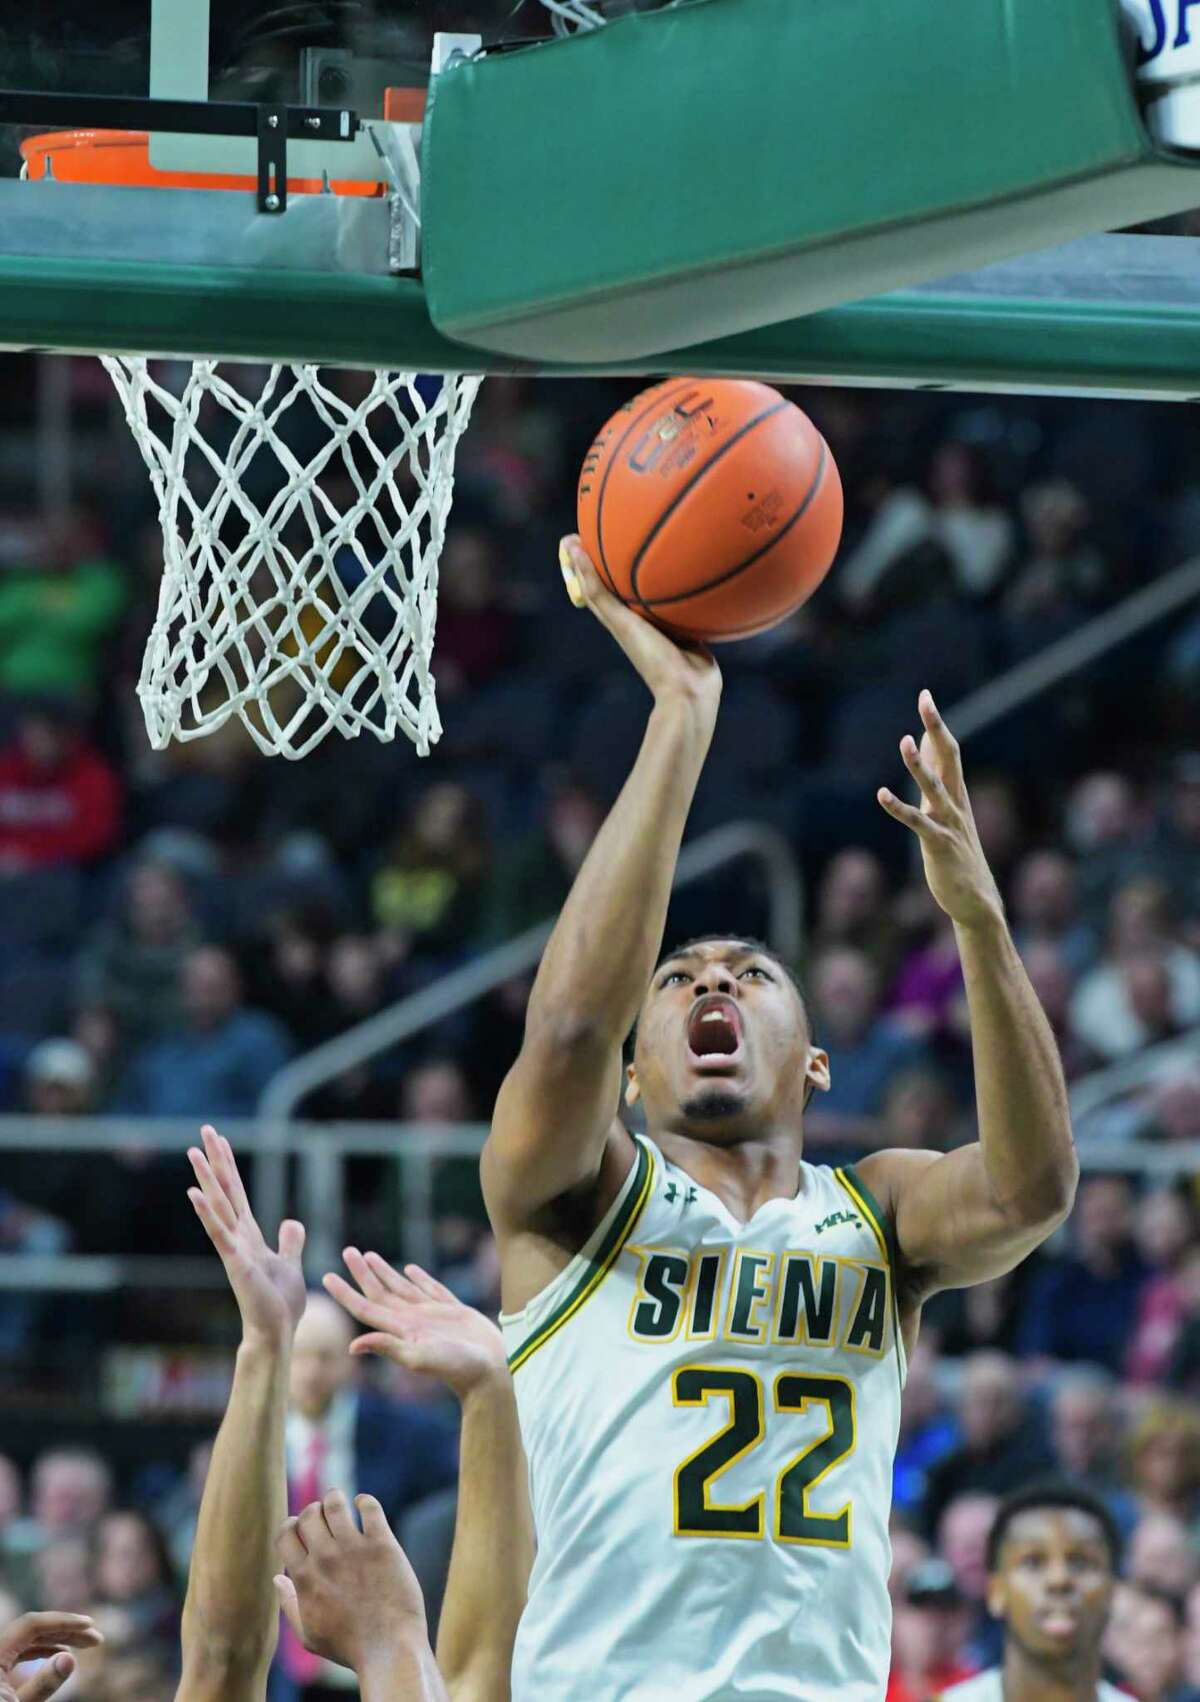 Jalen Pickett of Siena drives to the basket during their game against Marist on Sunday, Feb. 24, 2019, in Albany, N.Y. (Paul Buckowski/Times Union)